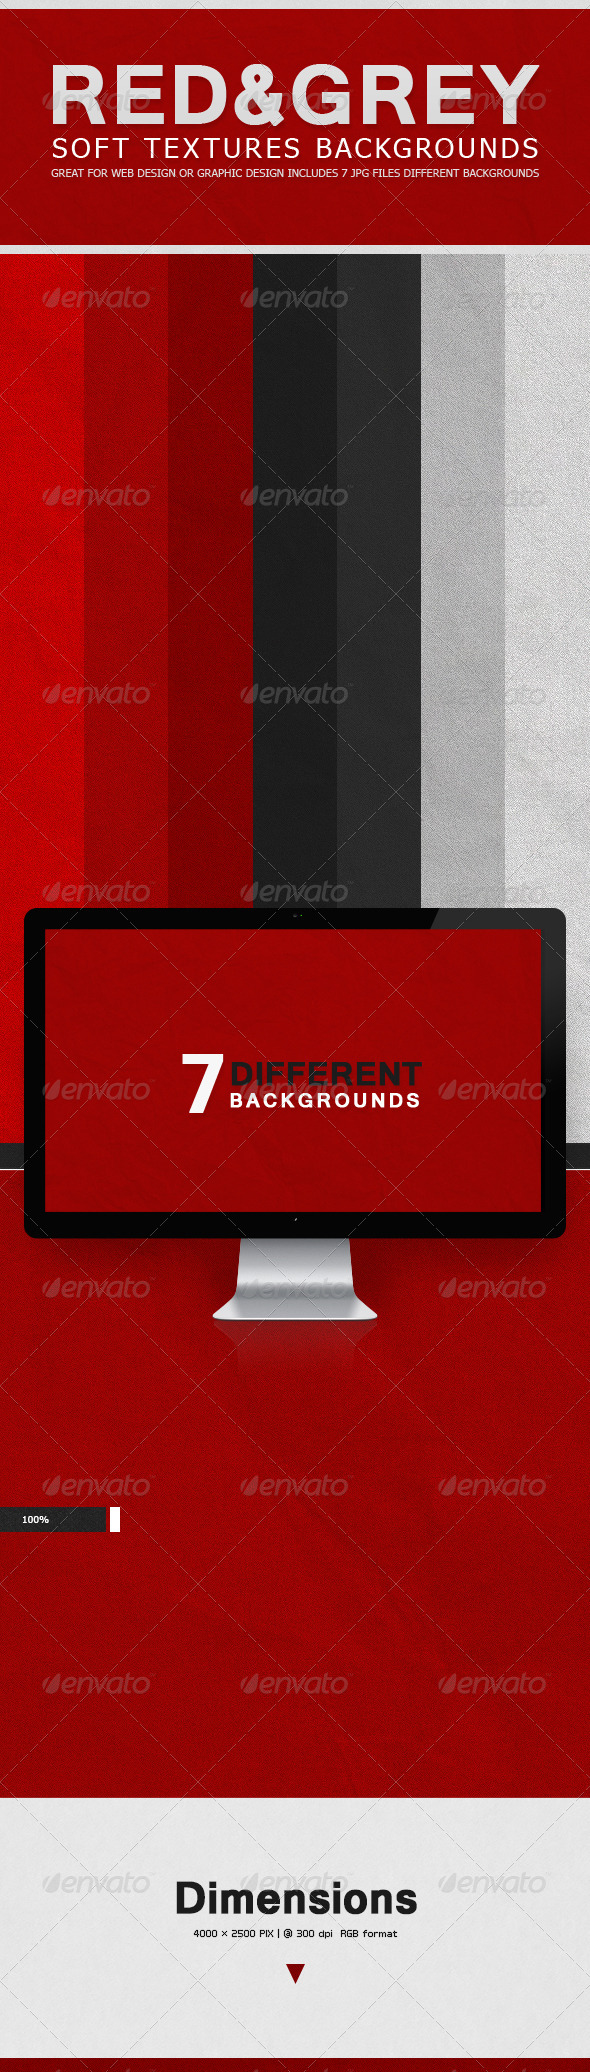 GraphicRiver Soft Textures Backgrounds Red & Grey 7717957